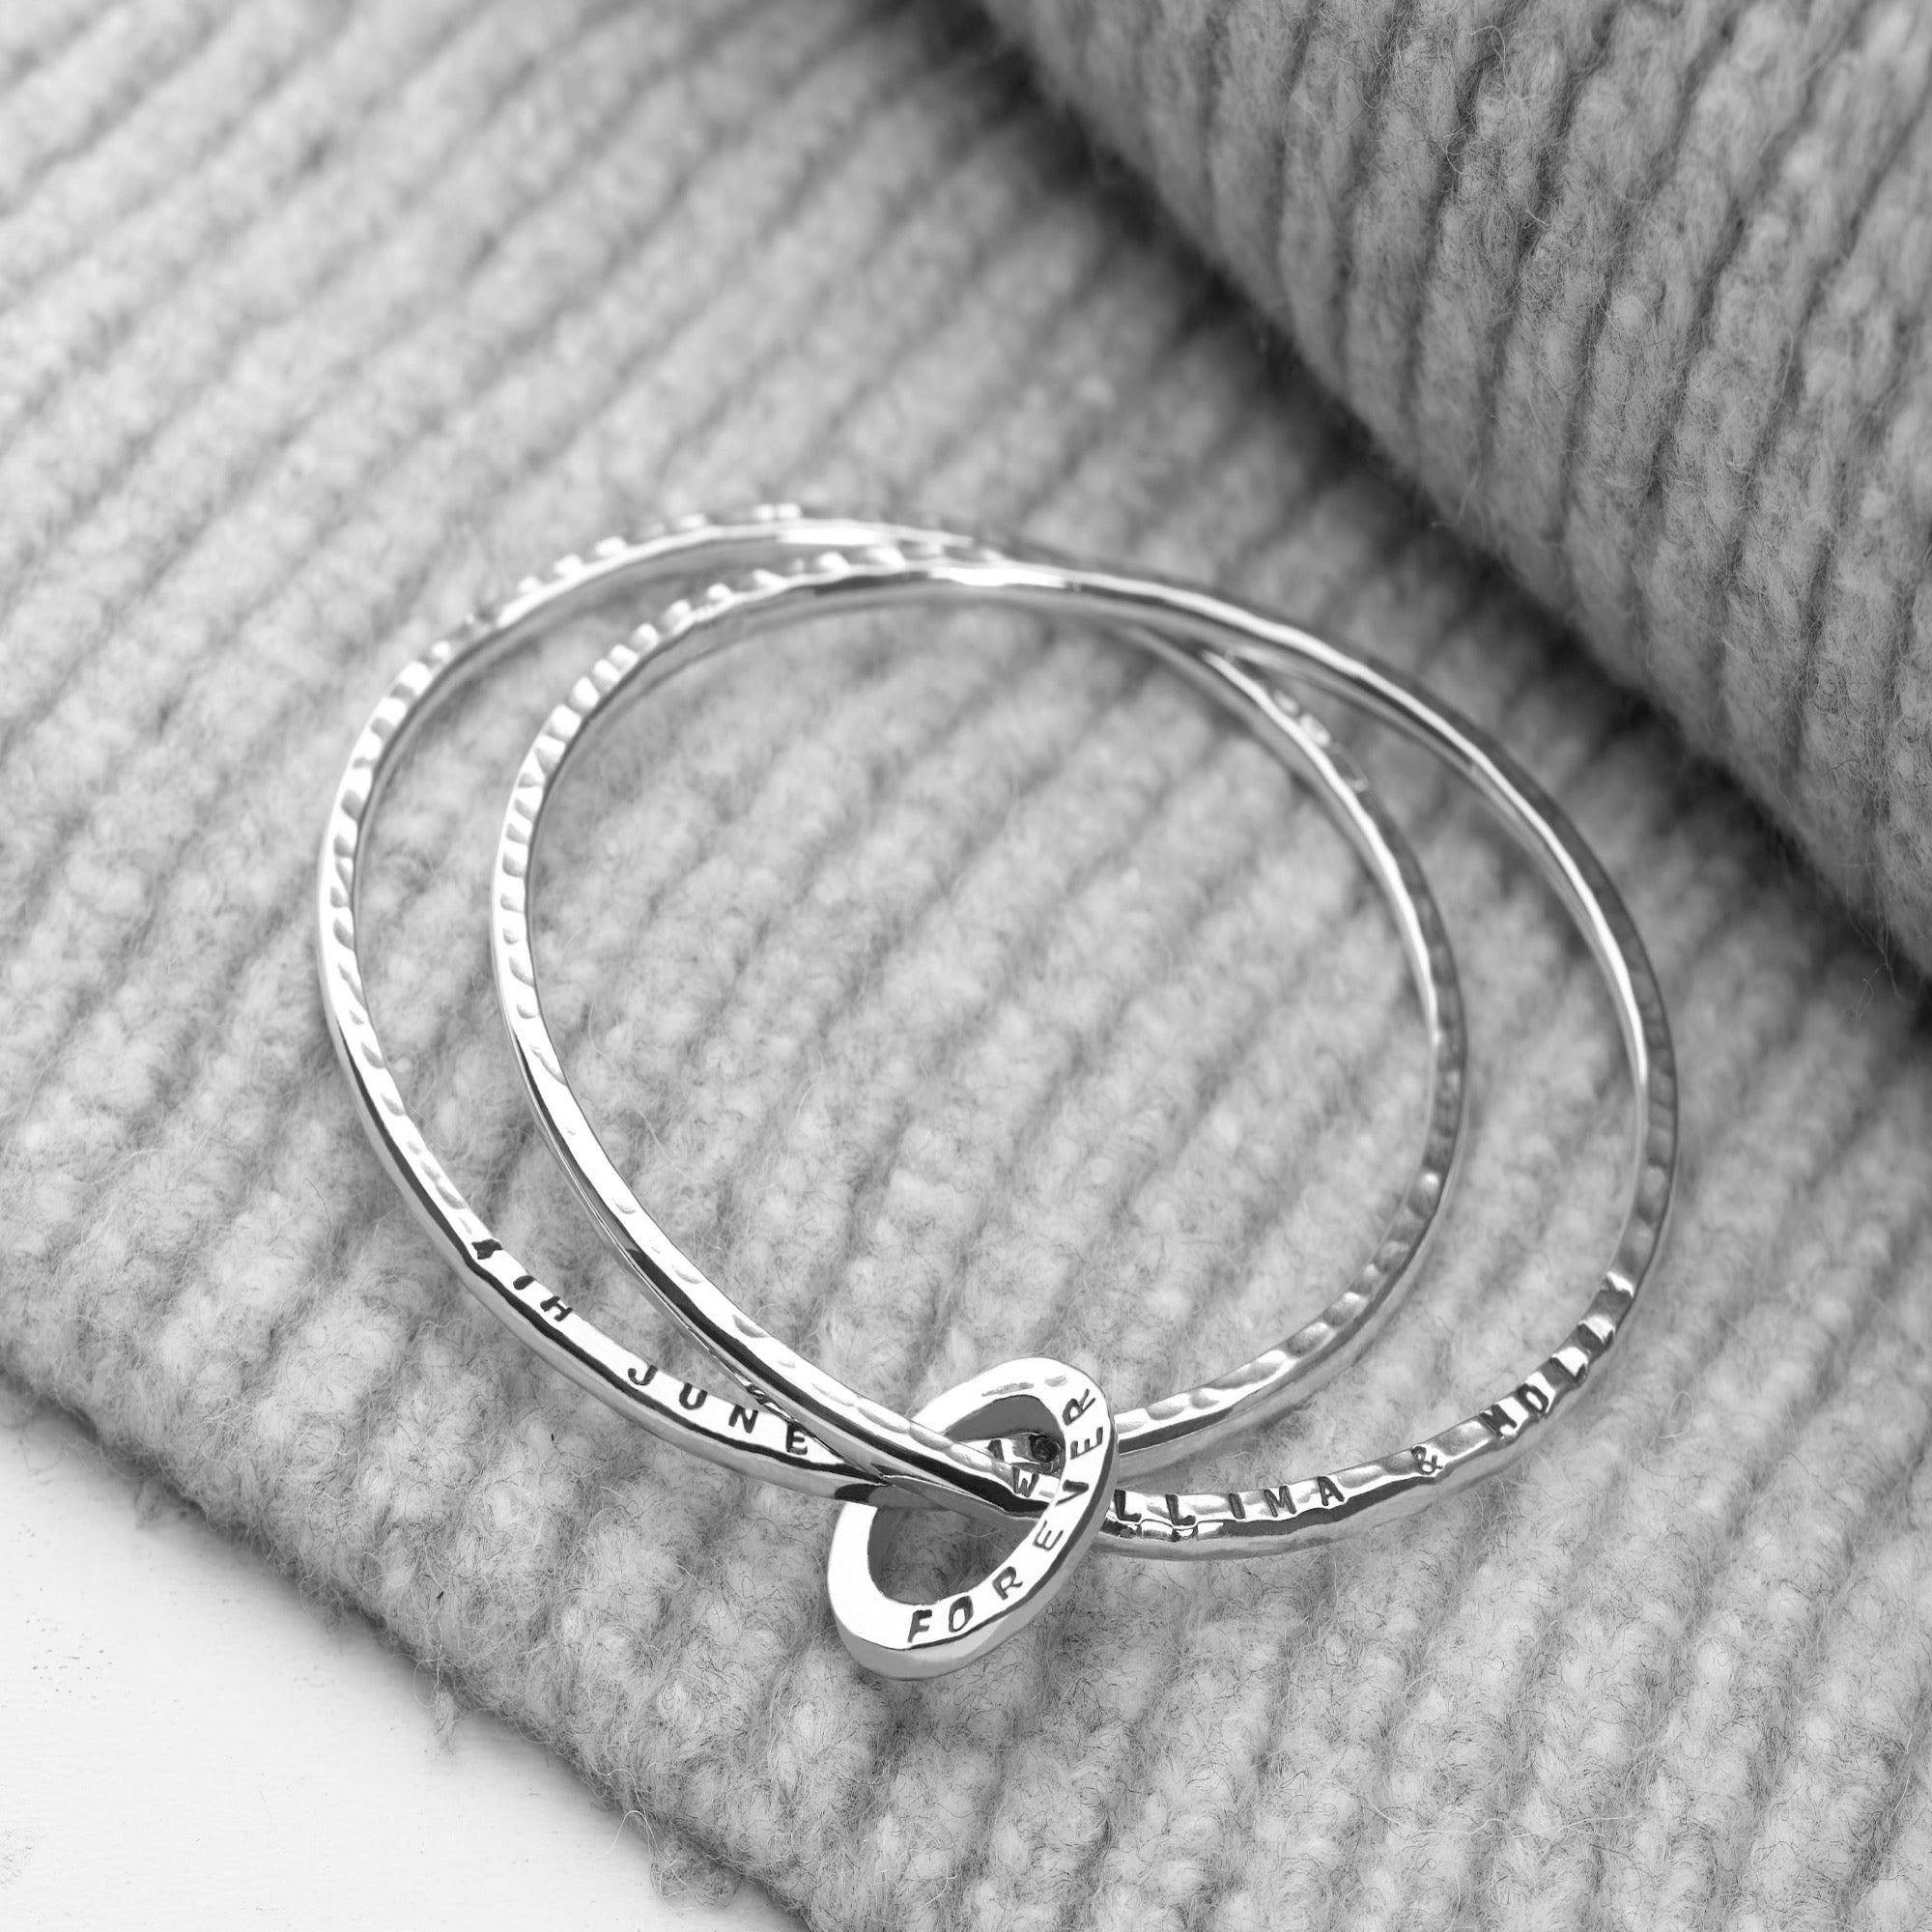 Personalised Hammered Silver Bangle (BGL6721)